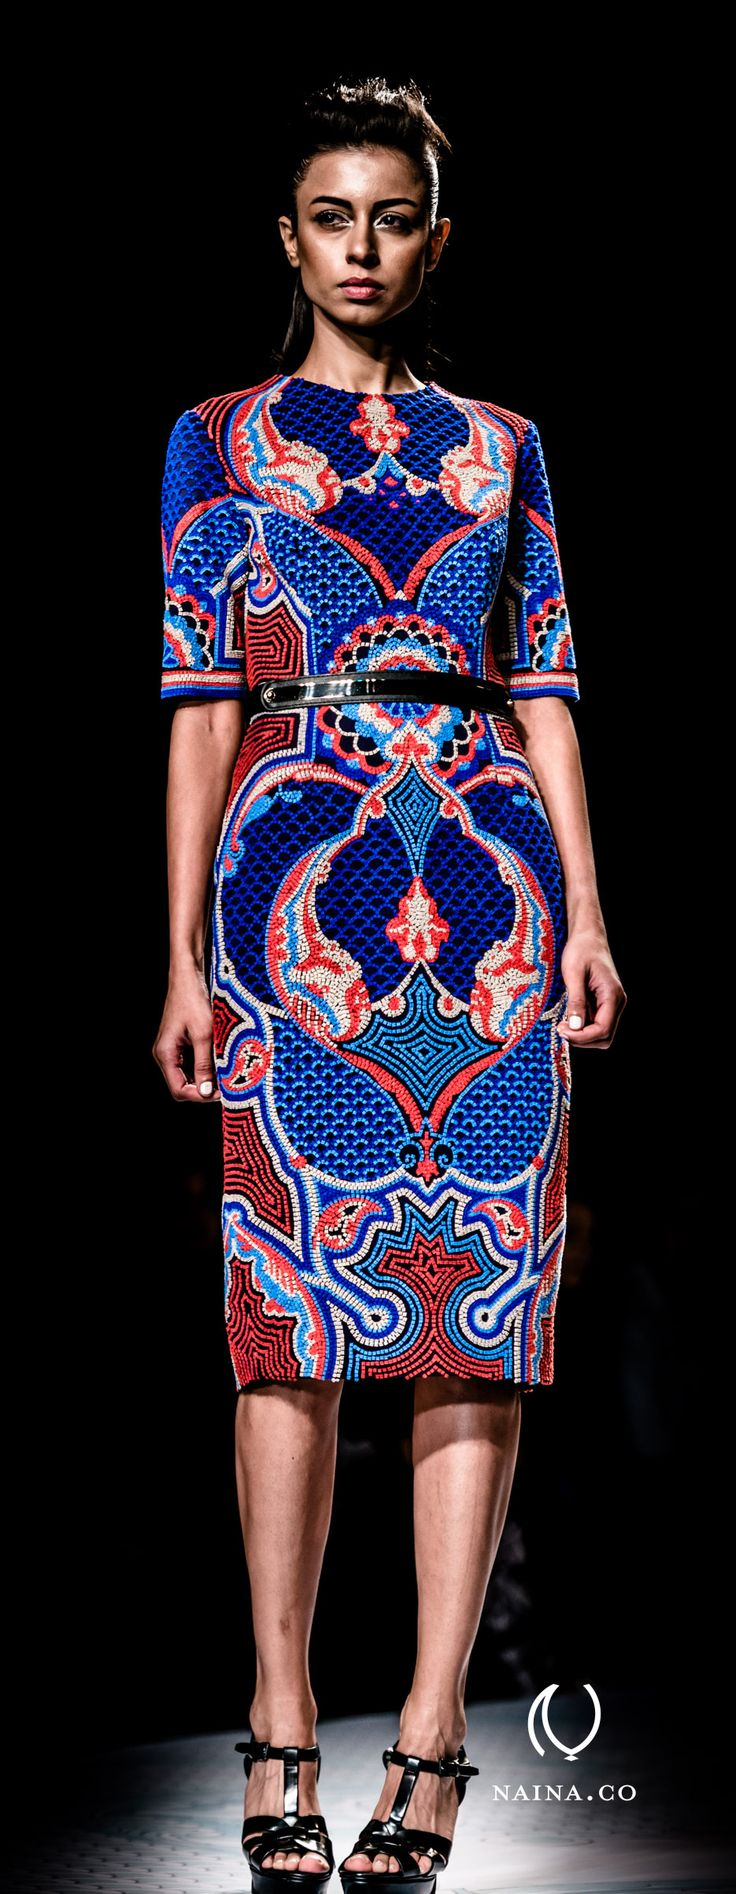 My absolute FAVORITE! Pankaj & Nidhi's The Grammar Of Ornament at the Wills Lifestyle India Fashion Week Spring / Summer 2014 ( http://www.naina.co/photography/2013/10/pankaj-nidhi-wifwss14/ )